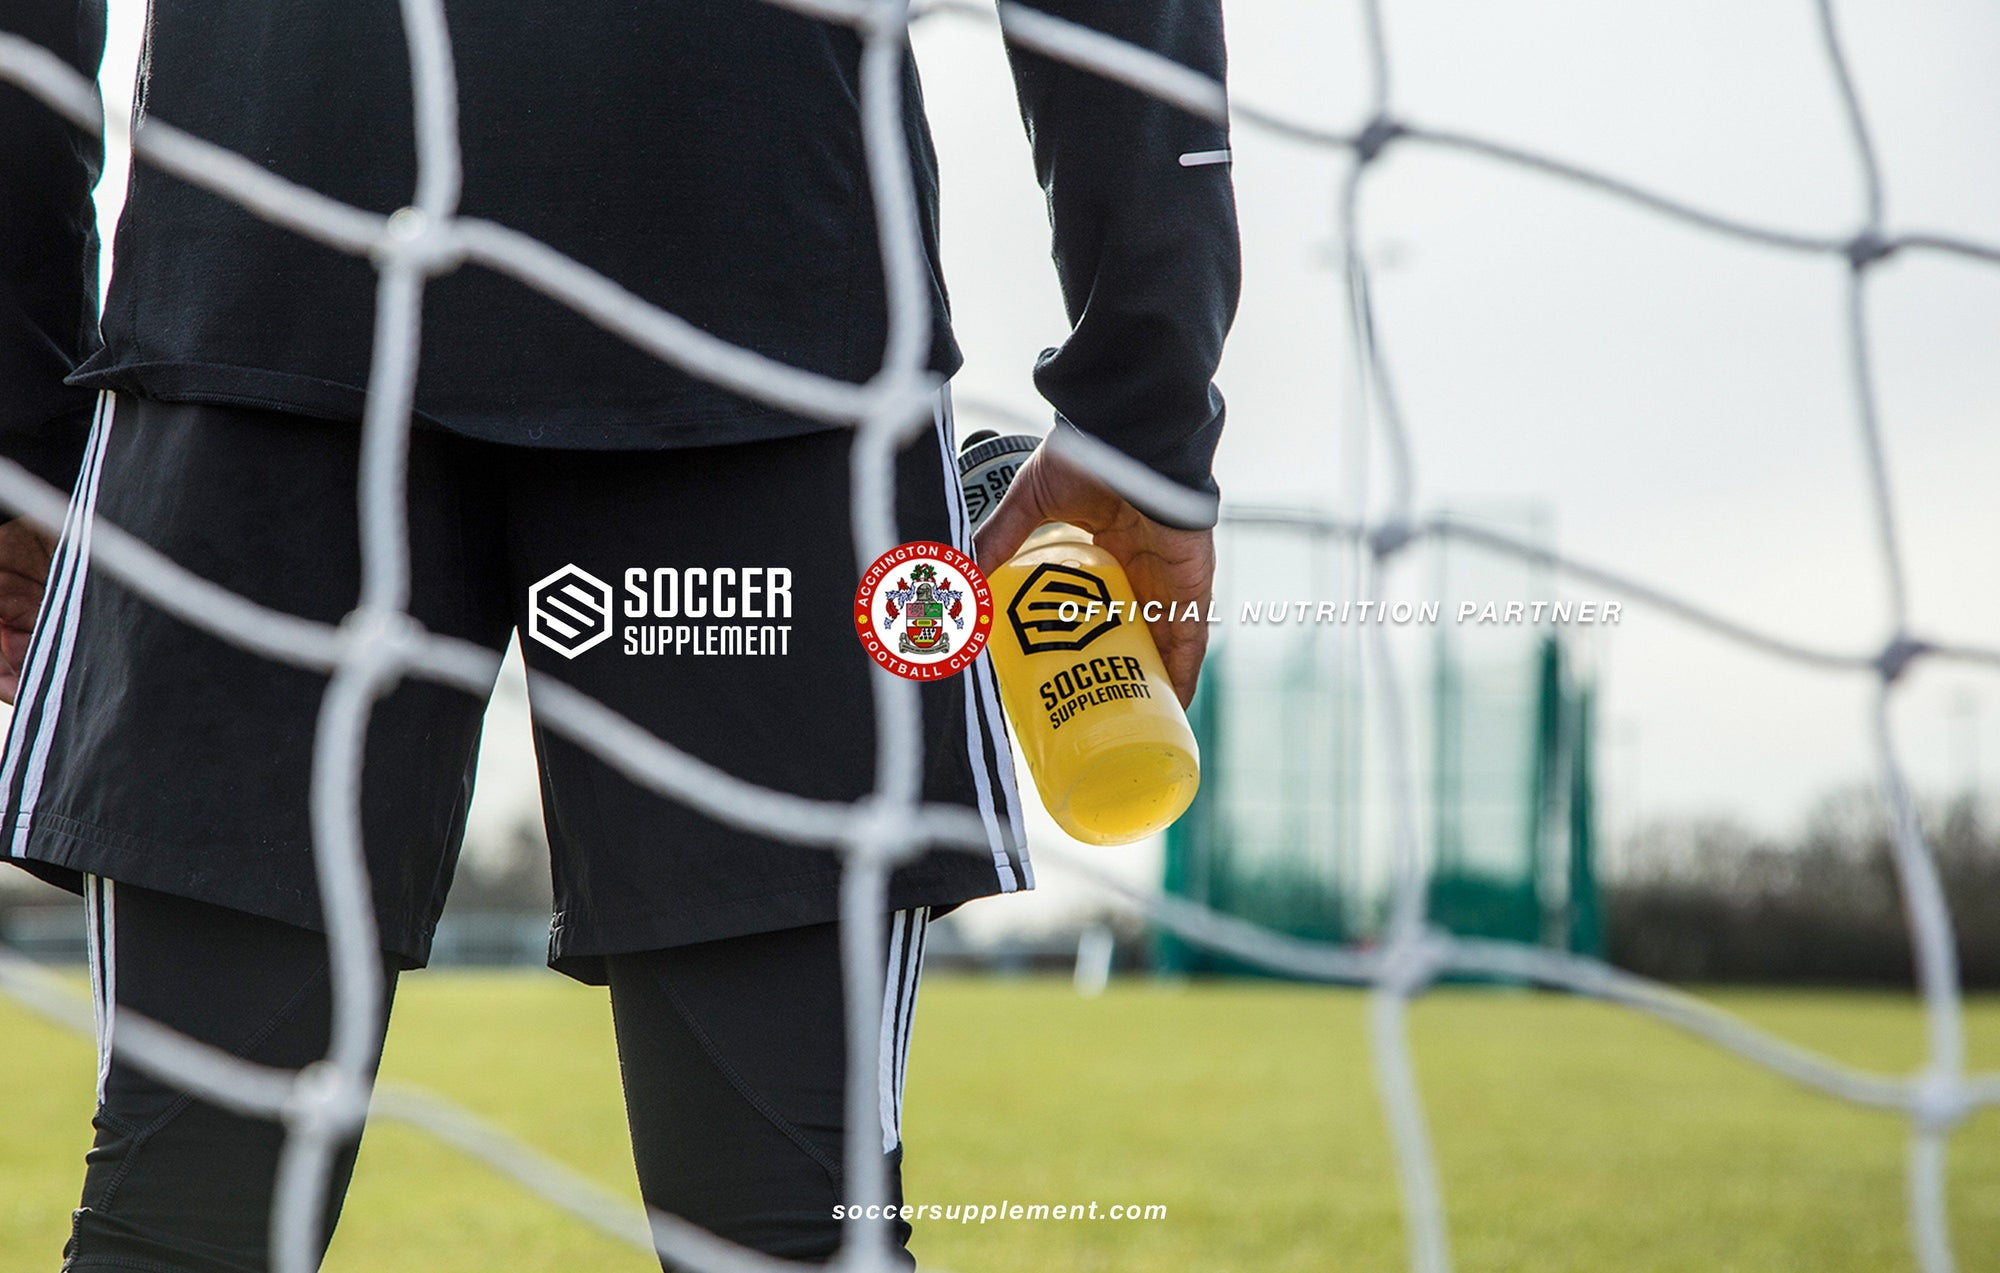 Soccer Supplement become Accrington Stanley's' nutrition partner